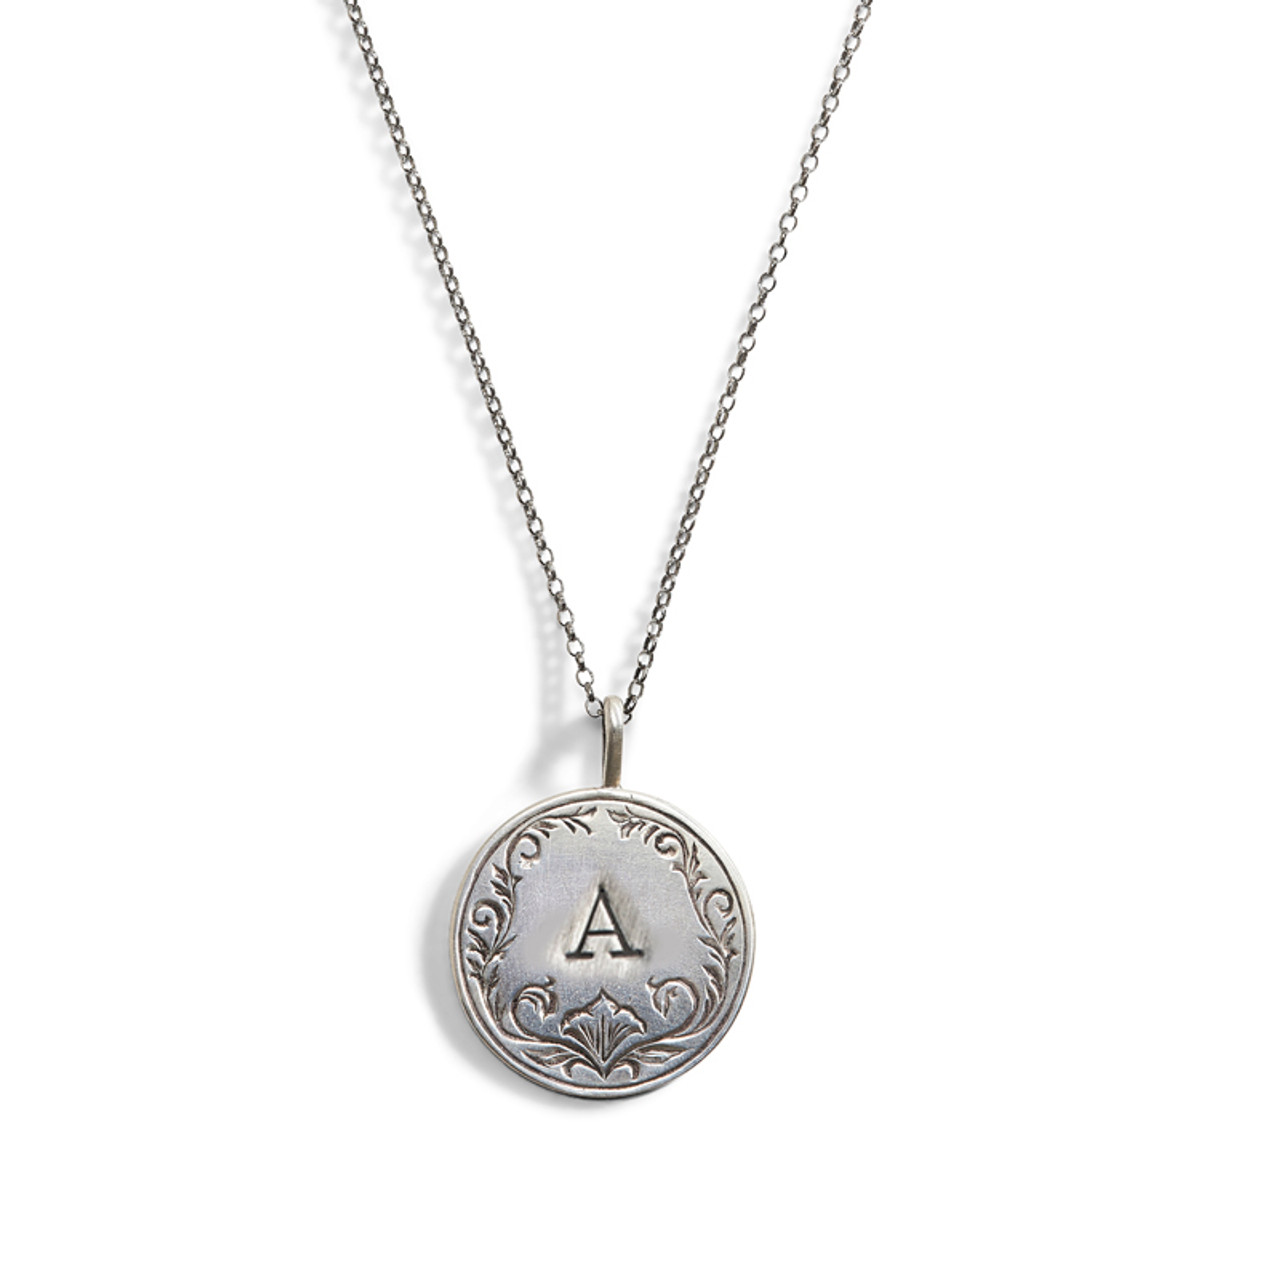 fc87454b1cac Scrolled Token Engraved Charm Necklace